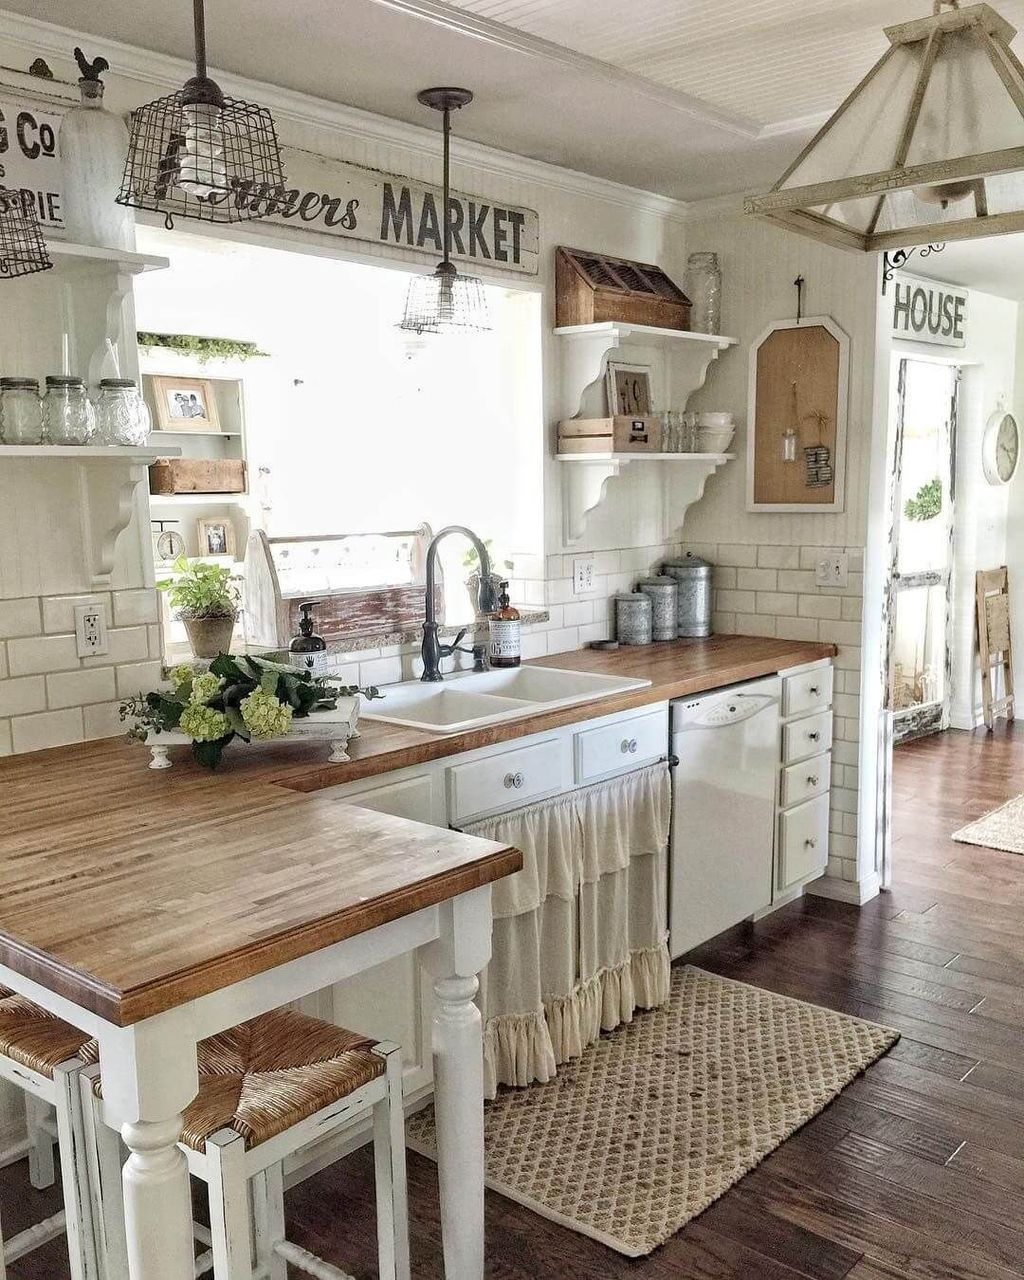 Pin on cozy kitchens